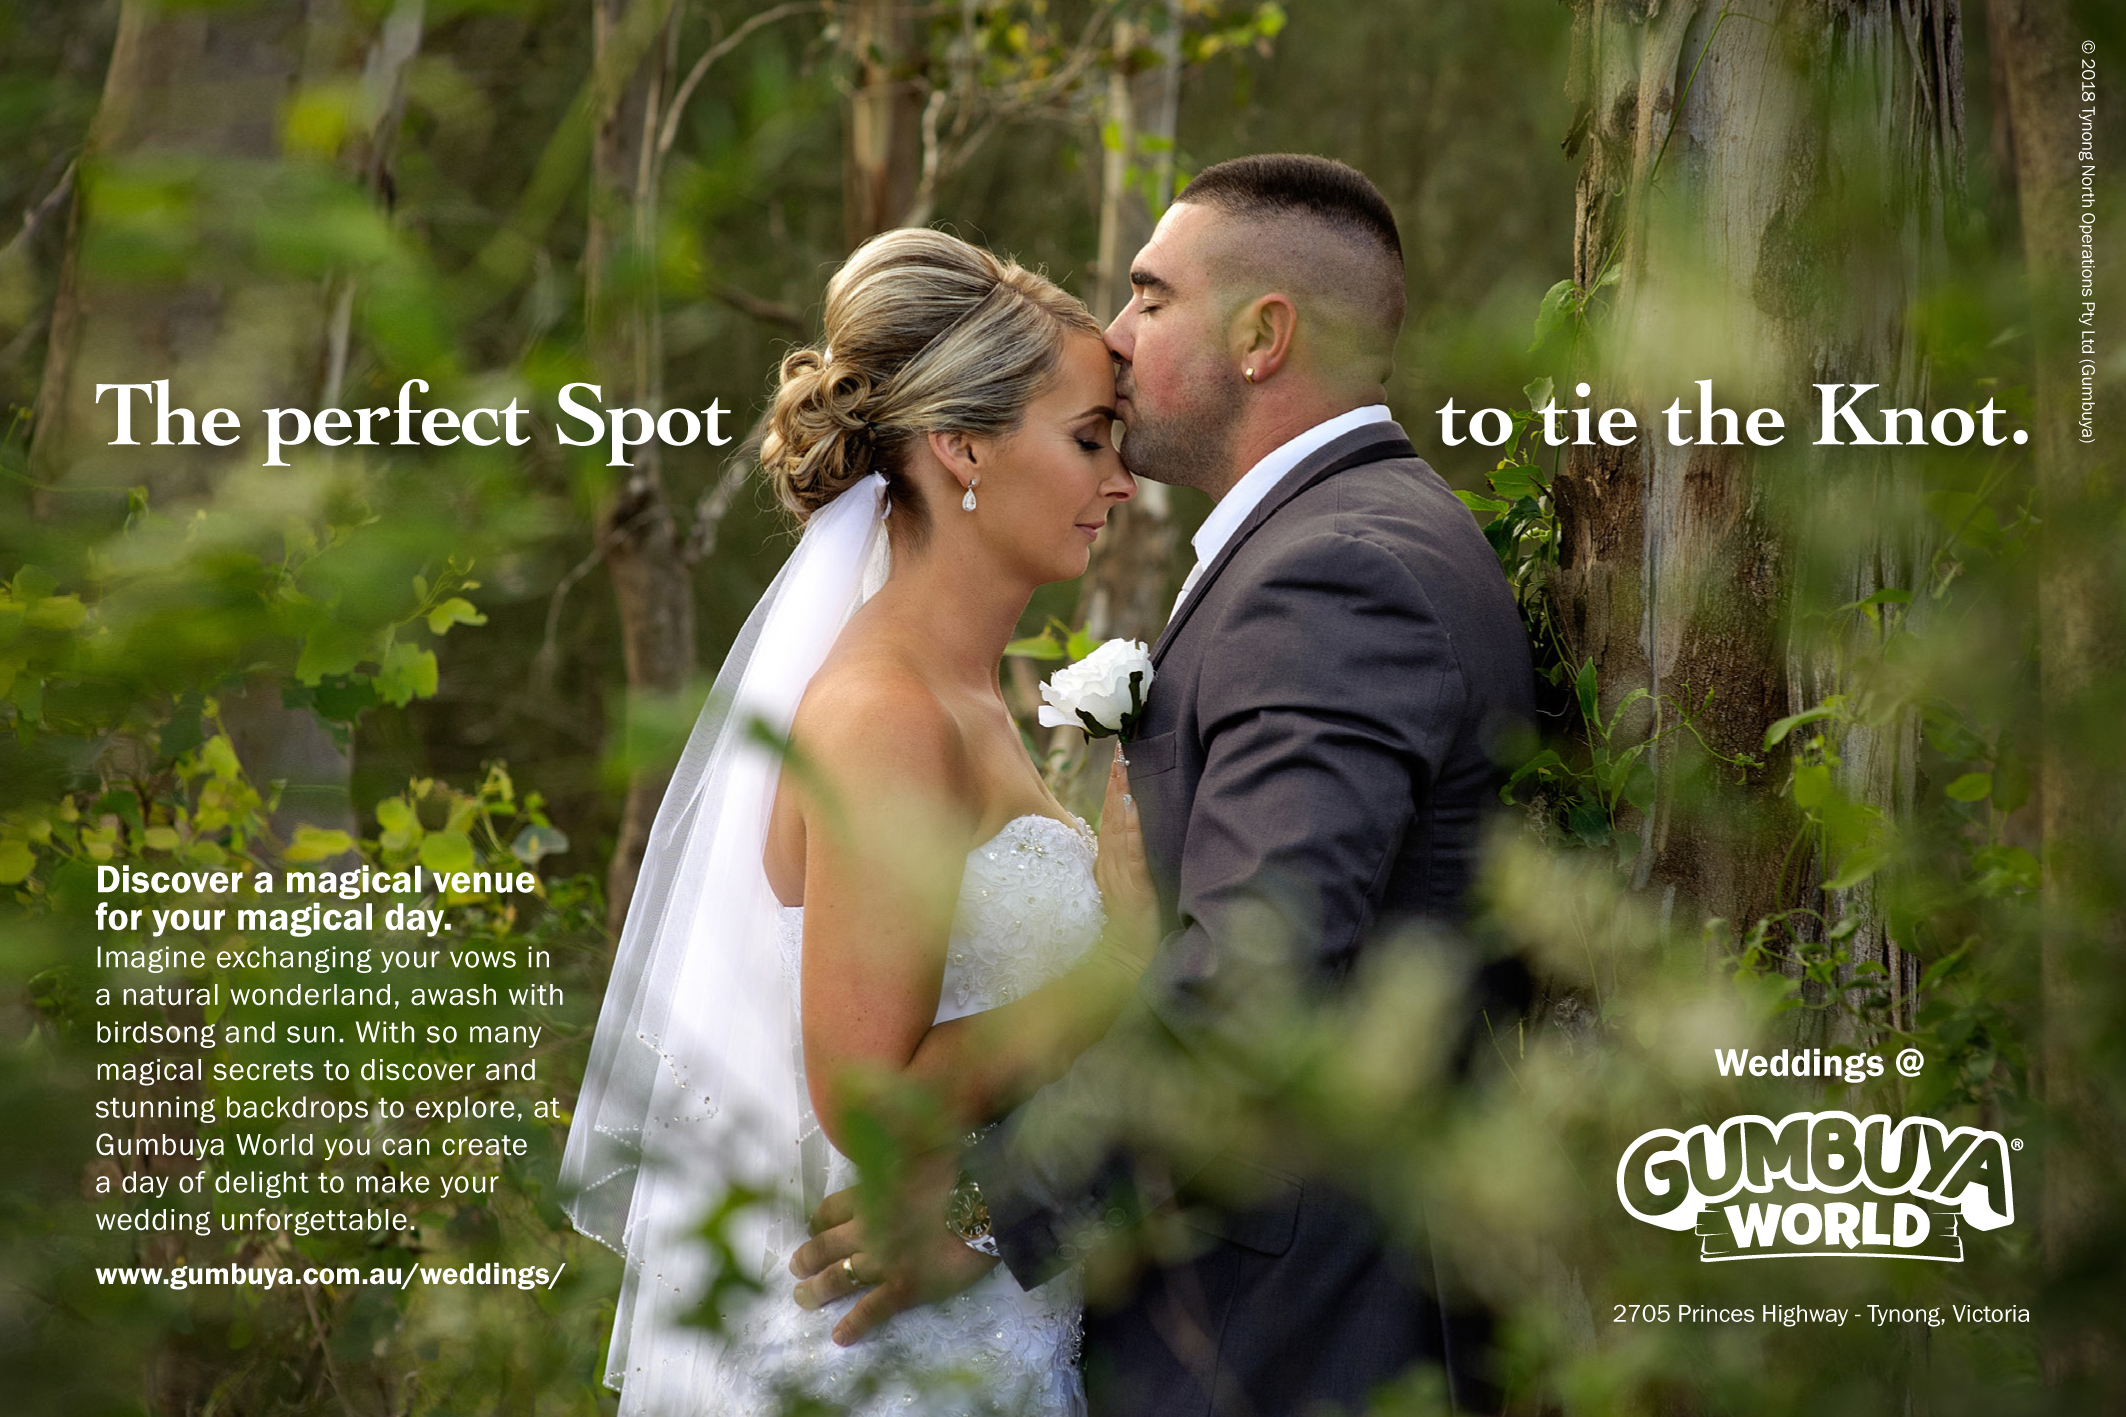 Gumbuya World - weddings flyer